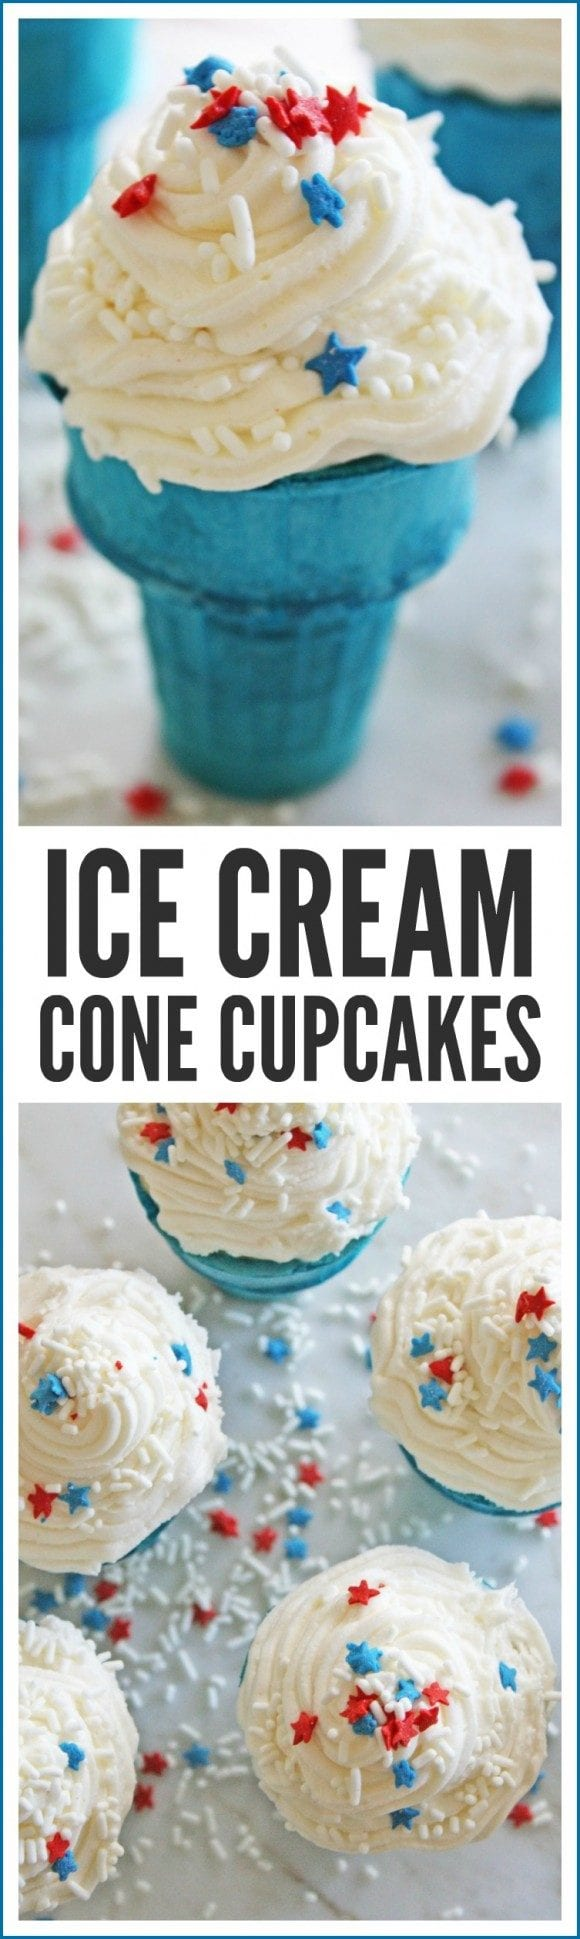 Ice cream cone cupcakes | CatchMyParty.com